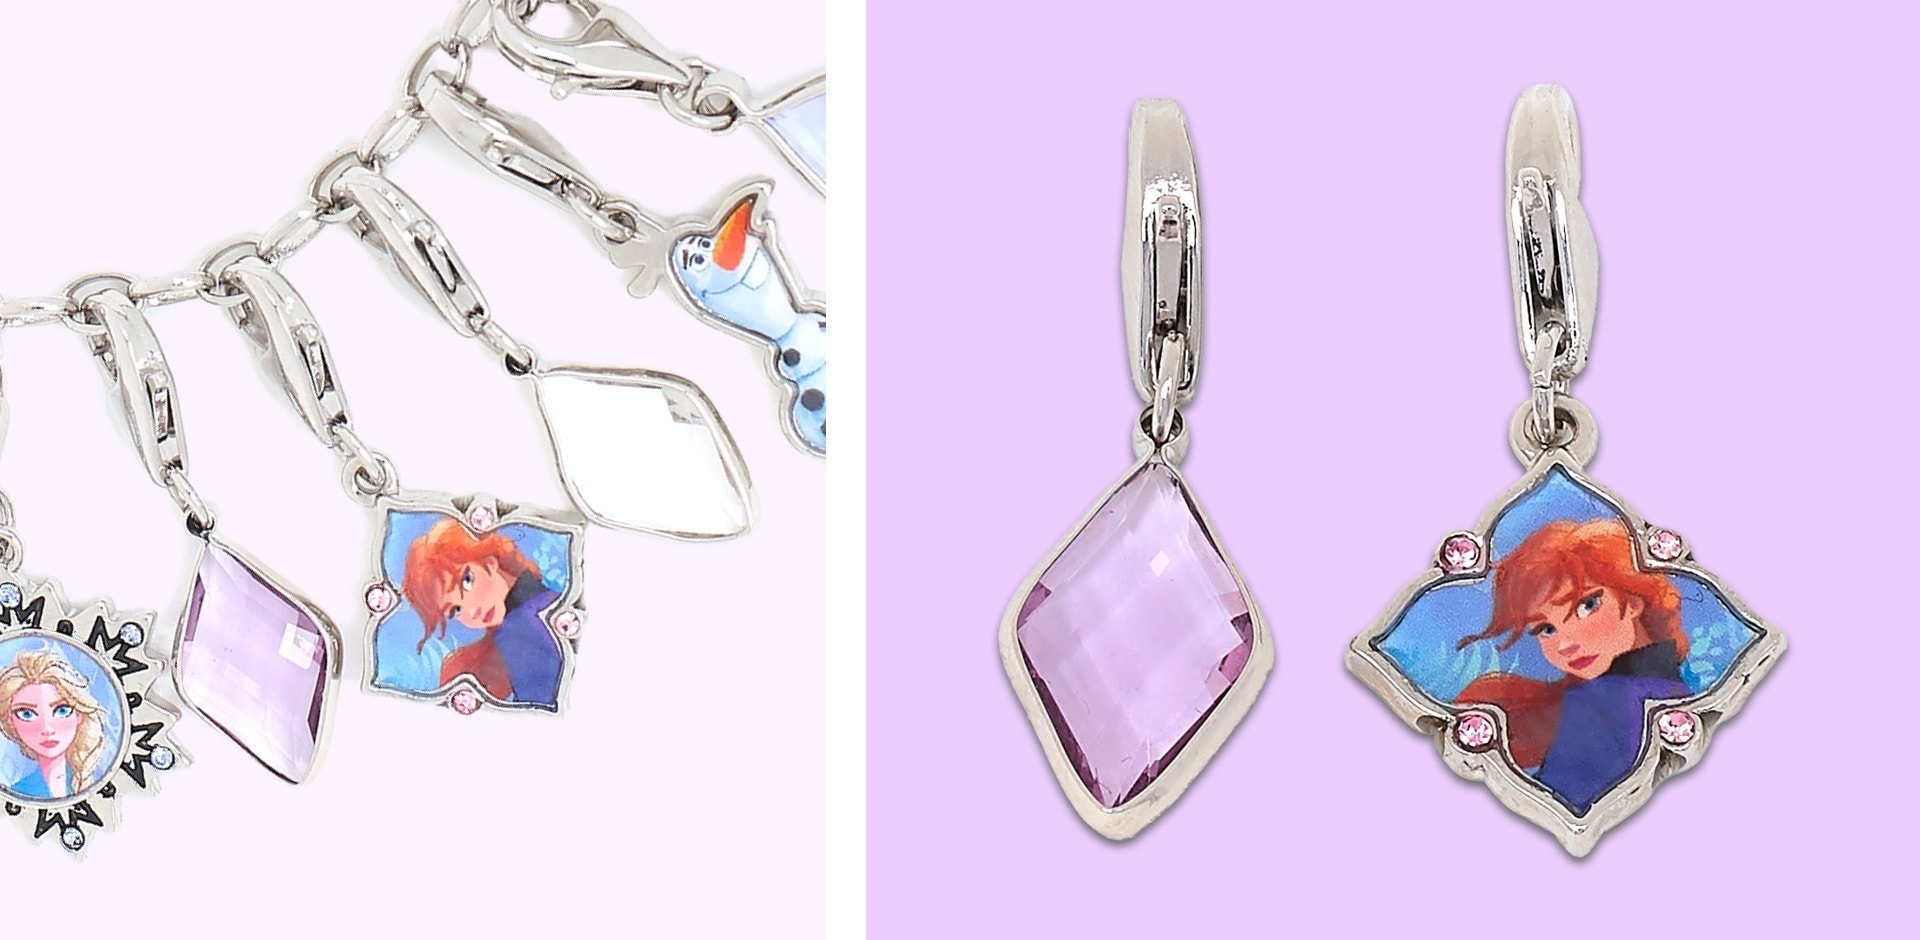 Snowflake charm with Anna character artwork and a pink diamond charm